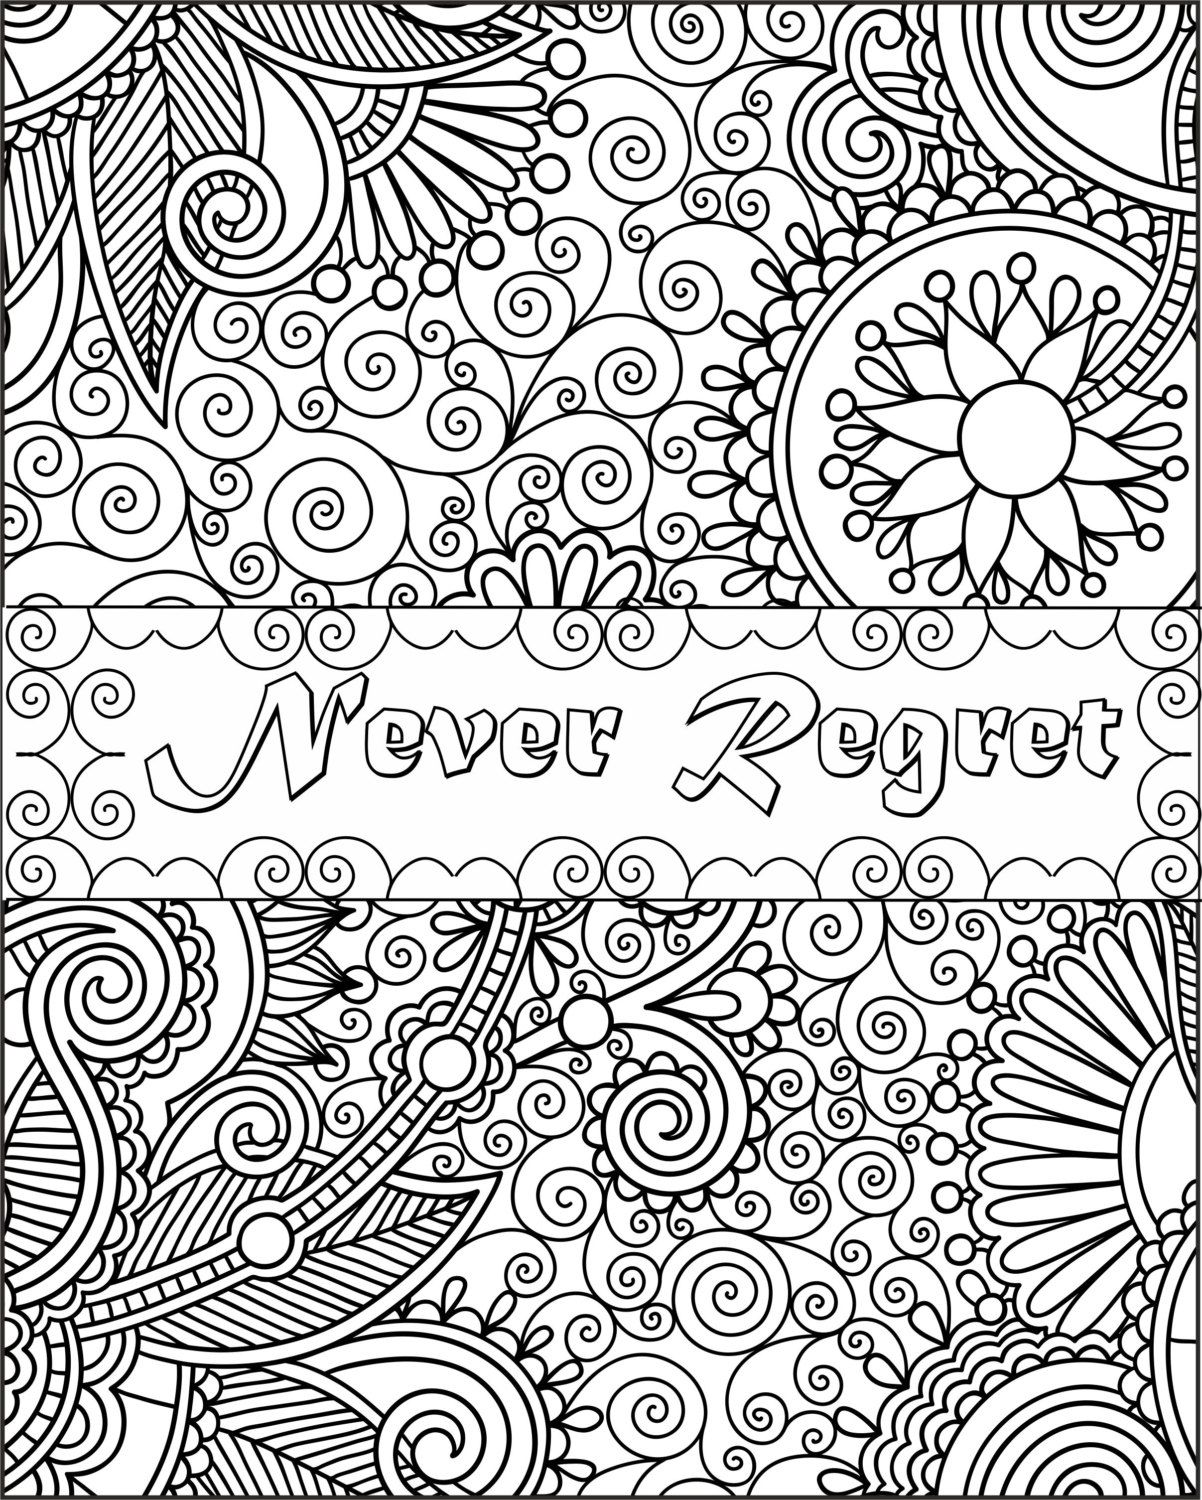 Never Regret Inspirational Fun Quotes Colouring Pages By HealthyLifeColouring